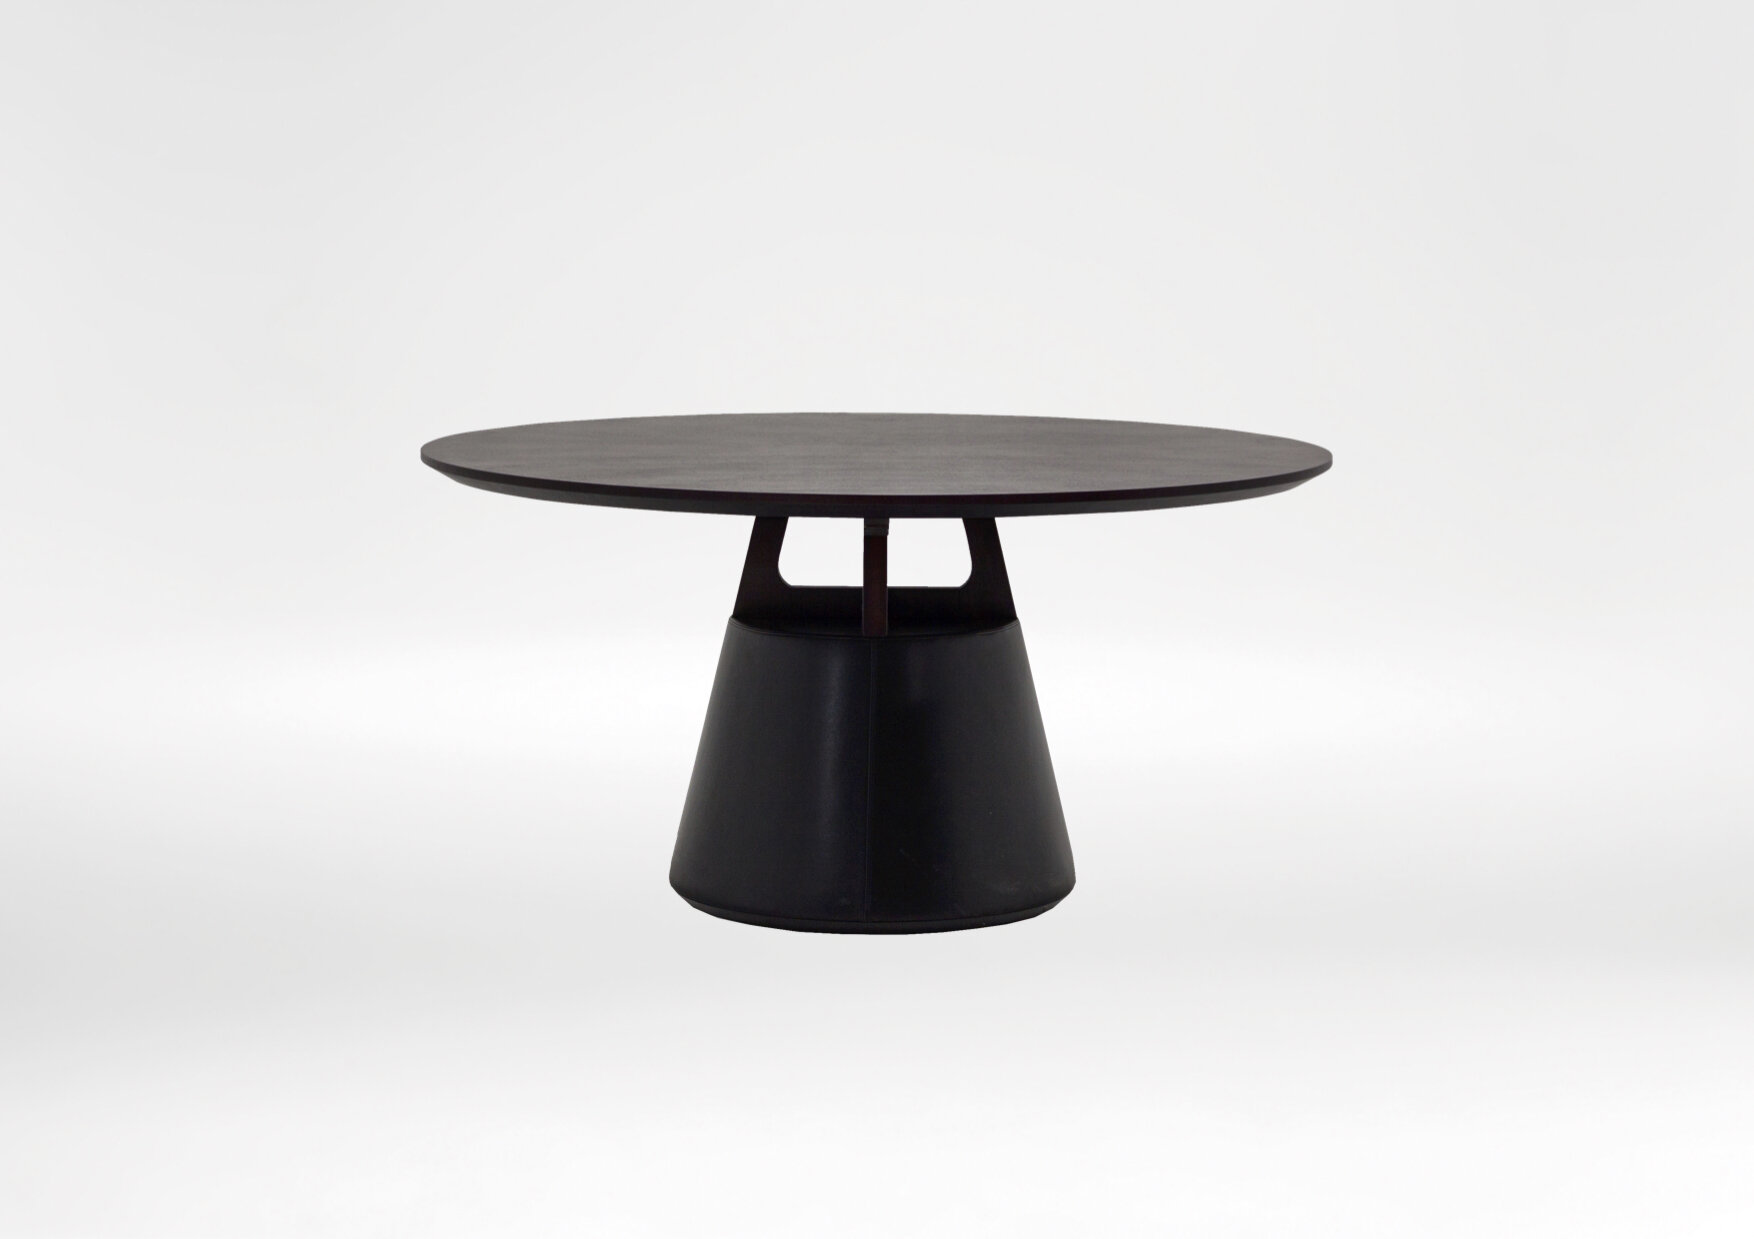 unity dining table - The Unity round dining table is perfect solution to large family dinners.